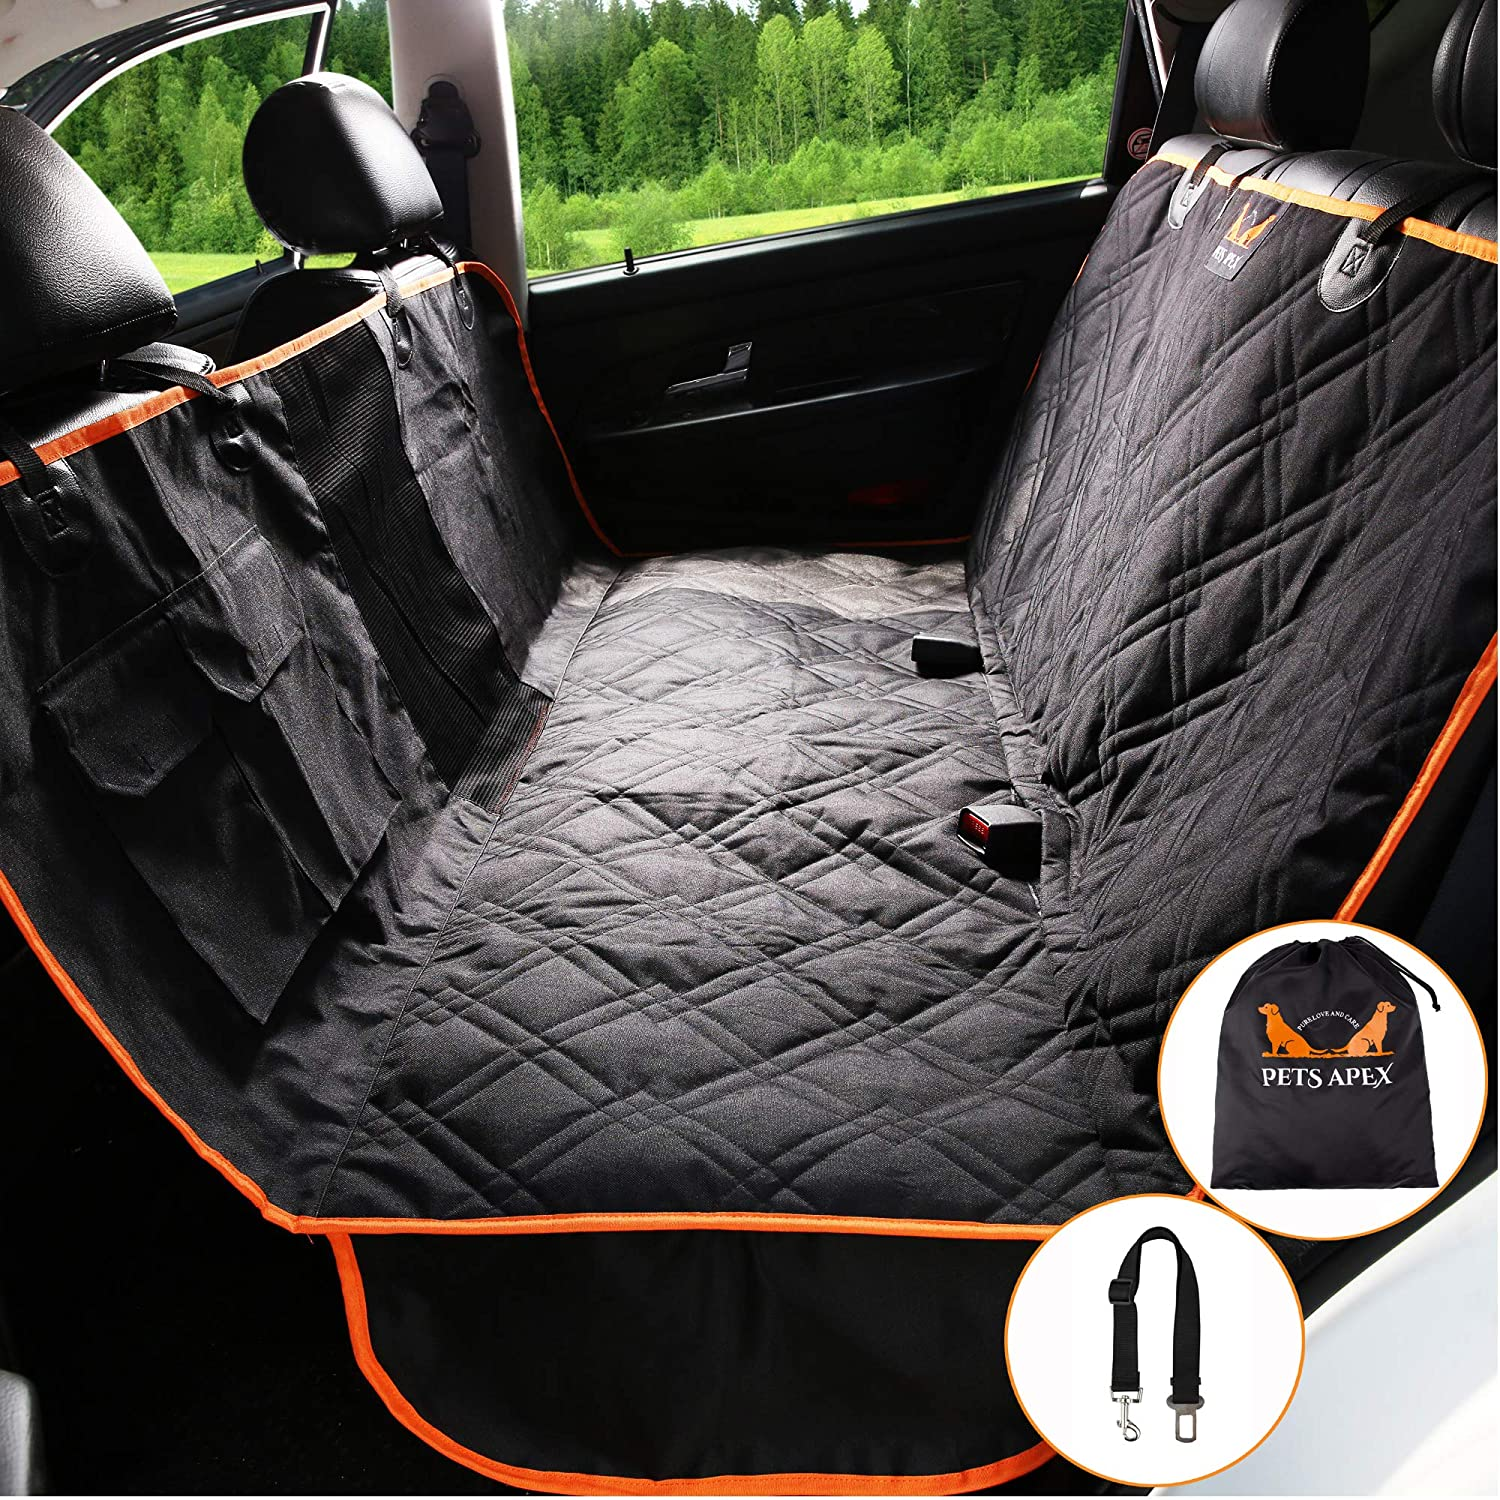 Dog Car Seat Covers – Backseat Covers for Pets – Heavy-Duty Durable Pet Hammock – Practical, Machine Washable – Mesh Window – Universally Compatible – Waterproof Design – 2 Velcro Pockets